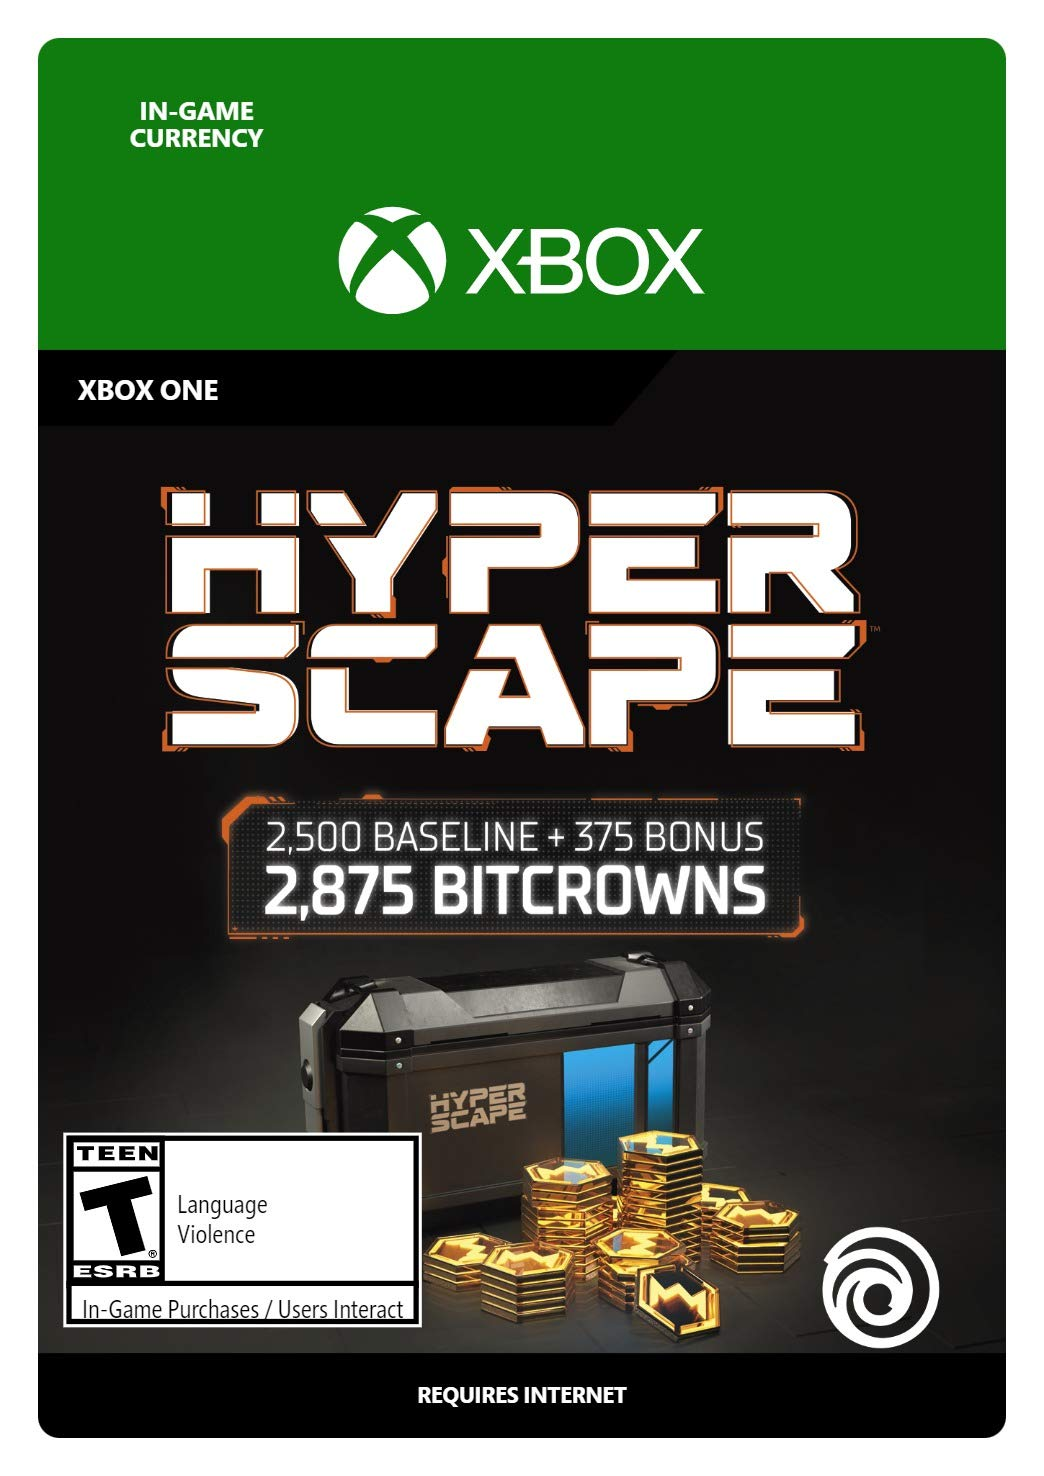 Hyper Scape Virtual Currency 2875 Bitcrowns Dig Branded goods Long-awaited Xbox Pack - One